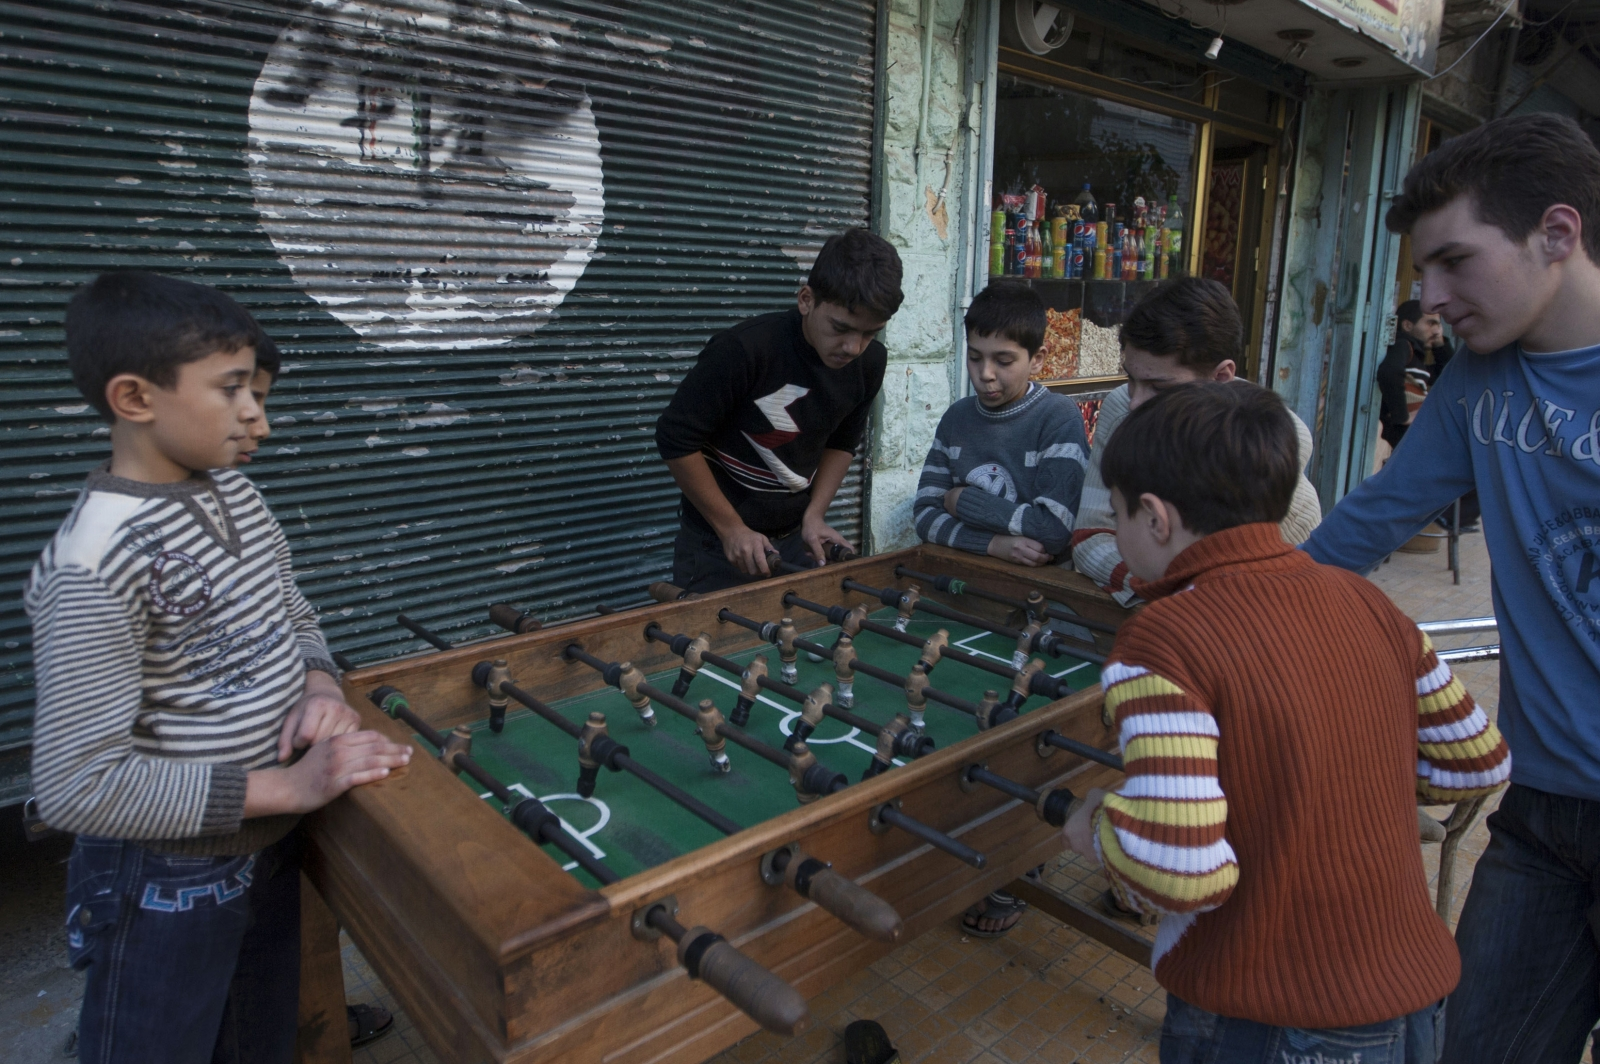 Isis fatwa table football beheaded figures